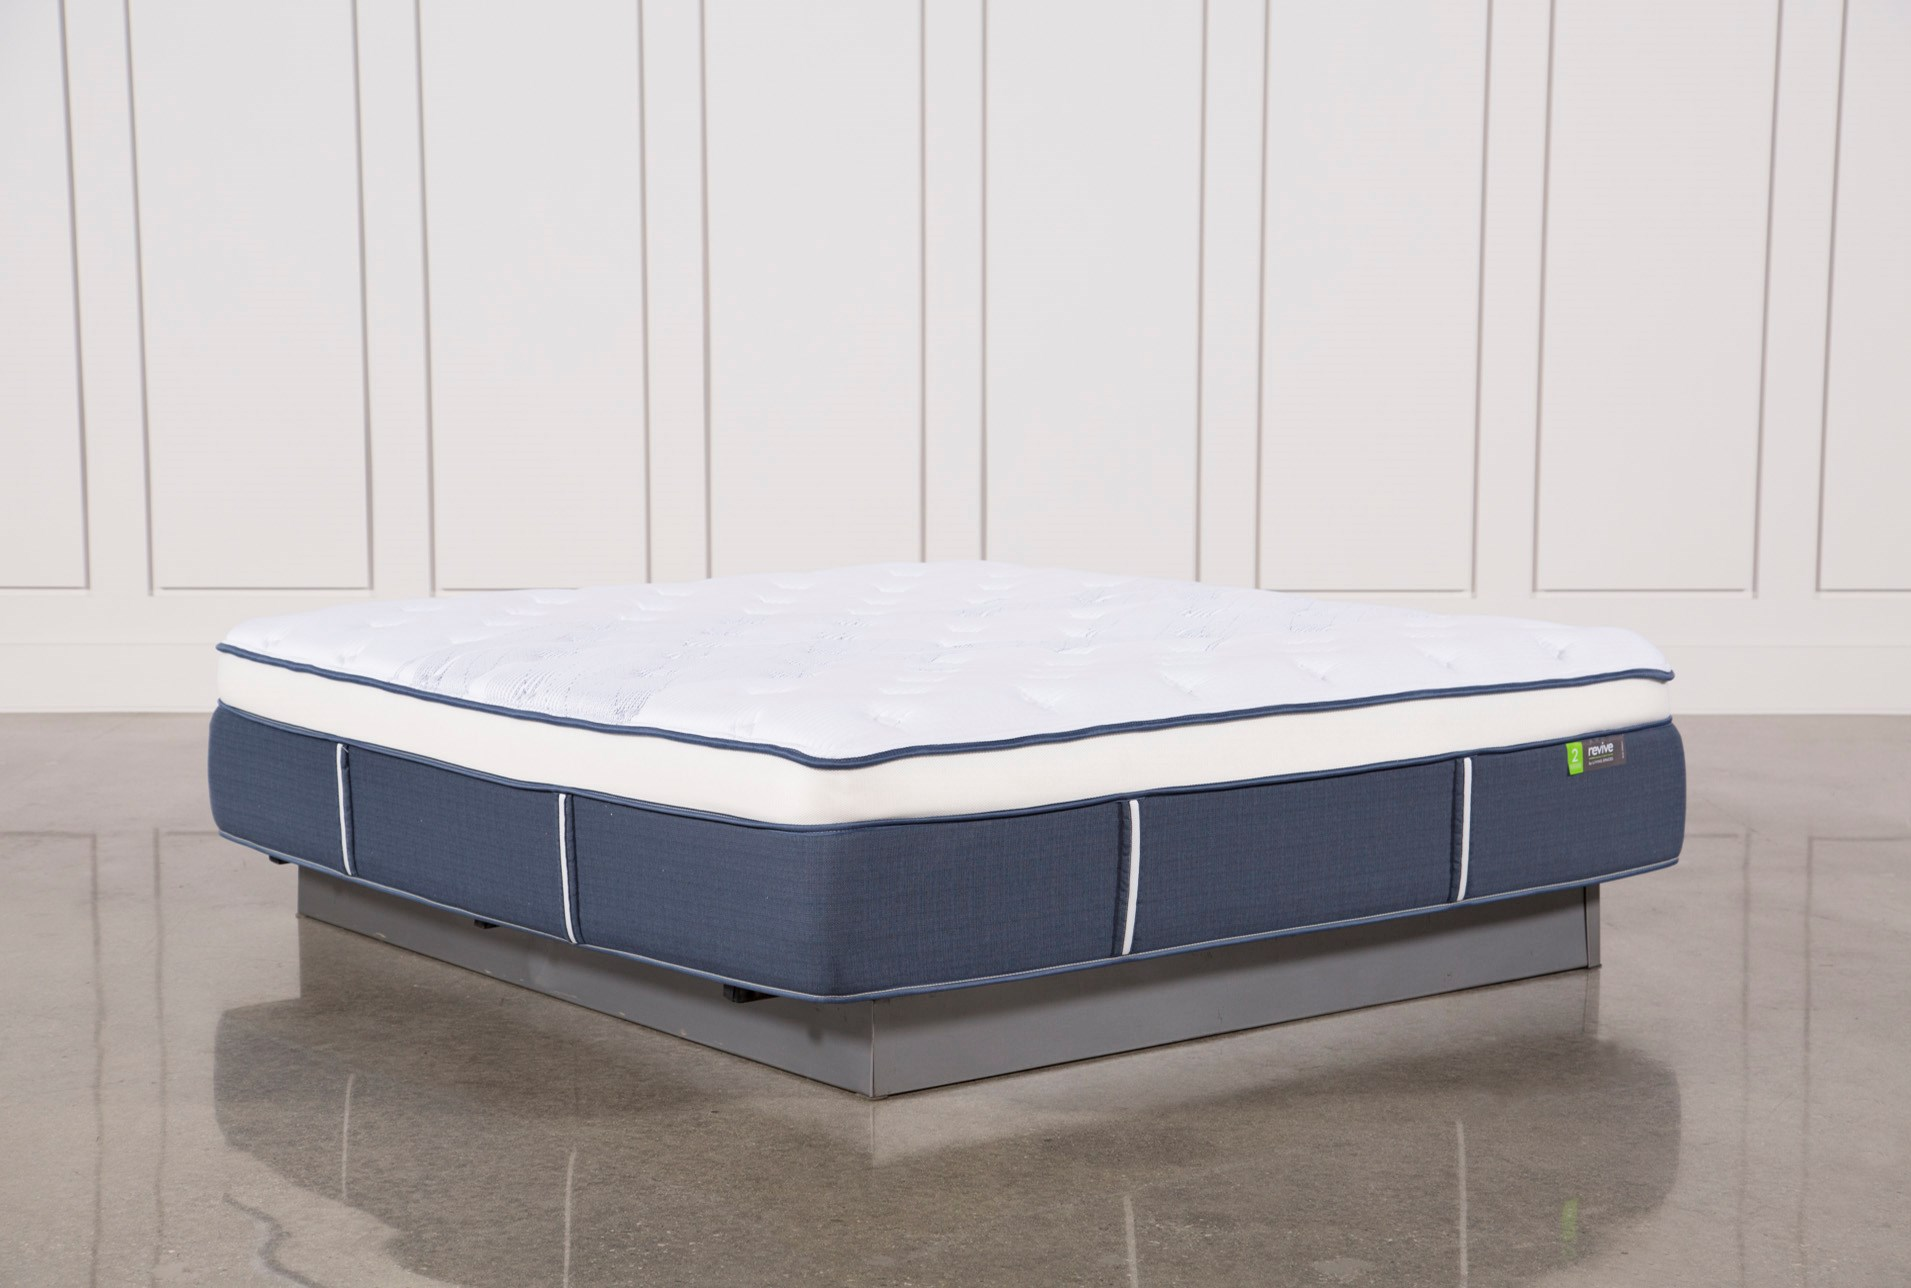 california king mattress.  Mattress Blue Springs Medium California King Mattress Qty 1 Has Been Successfully  Added To Your Cart In F